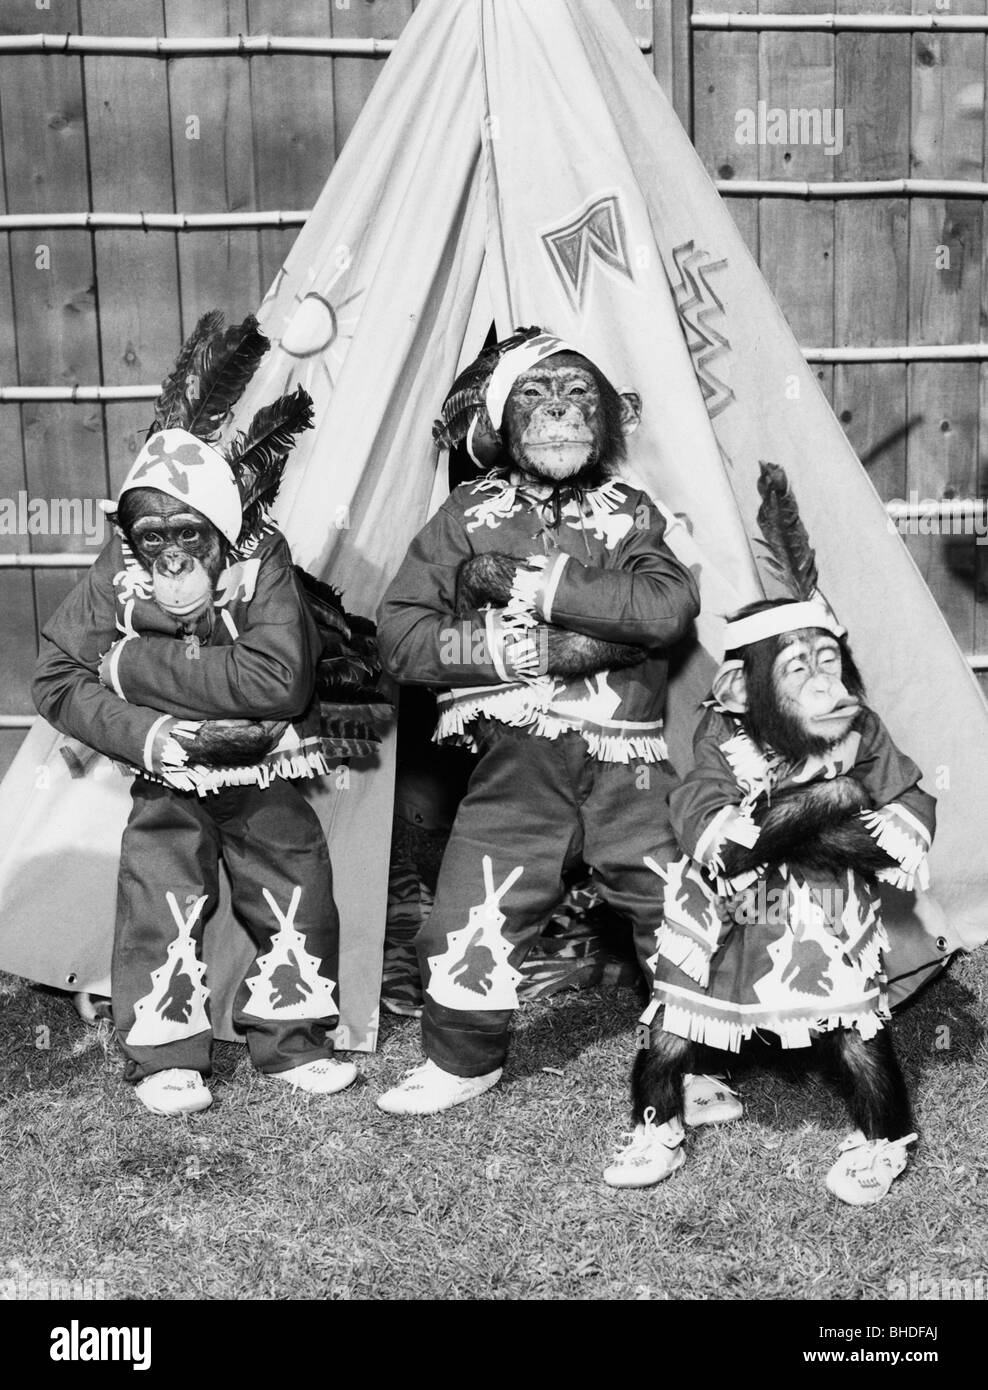 Chimpanzee pictures chimpanzees are all black but - Zoology Animals Monkeys Dressed Up As Indians In Front Of A Tent 1960s